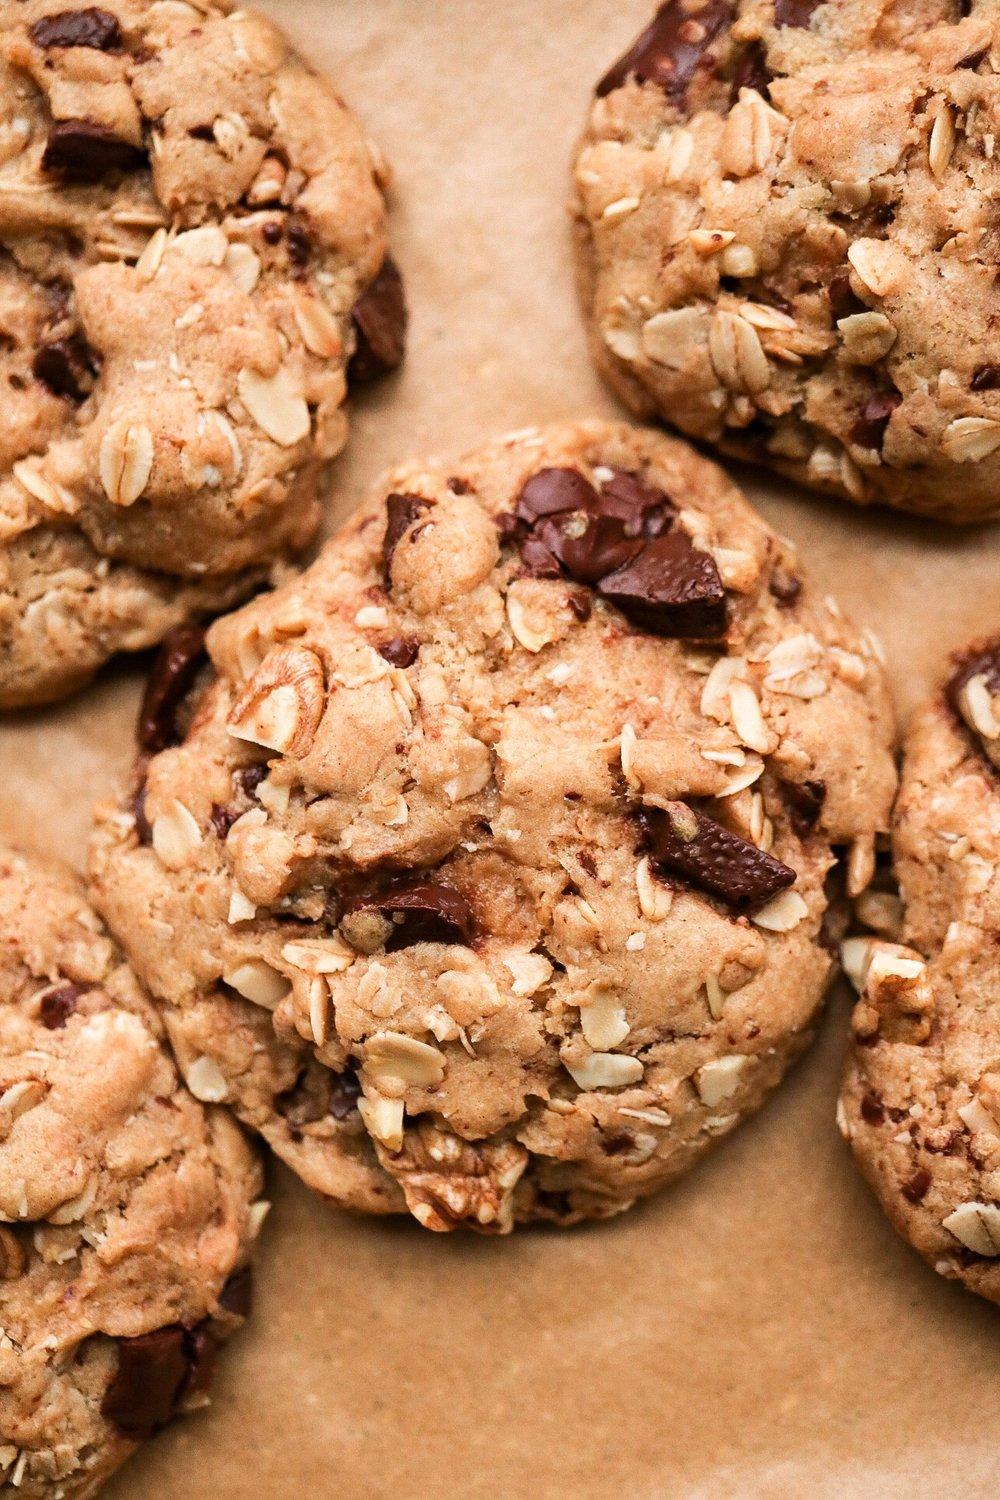 Chocolate Chunk Walnut Oatmeal Cookies - INGREDIENTS:1 cup all purpose or spelt flour1/2 tsp baking powder1/4 tsp baking soda1/2 tsp salt1/3 cup melted coconut oil2/3 cup brown sugar1/4 cup warm water1/3 cup chopped chocolate1/2 cup rolled oats1/3 cup chopped walnutsINSTRUCTIONS:Preheat your oven to 350F. Line a baking pan with parchment paper and set aside. In a bowl, whisk together the flour, salt, baking soda, baking powder, and set aside. In another bowl, combine the sugar, melted oil, and warm water. Add the wet mixture to the dry, and mix. Fold in the chocolate, oats, and walnuts, and form cookie dough balls to place on your pan. The batter should make around 10-12 cookies. Bake for 12-14 minutes, depending on how crispy you like them.